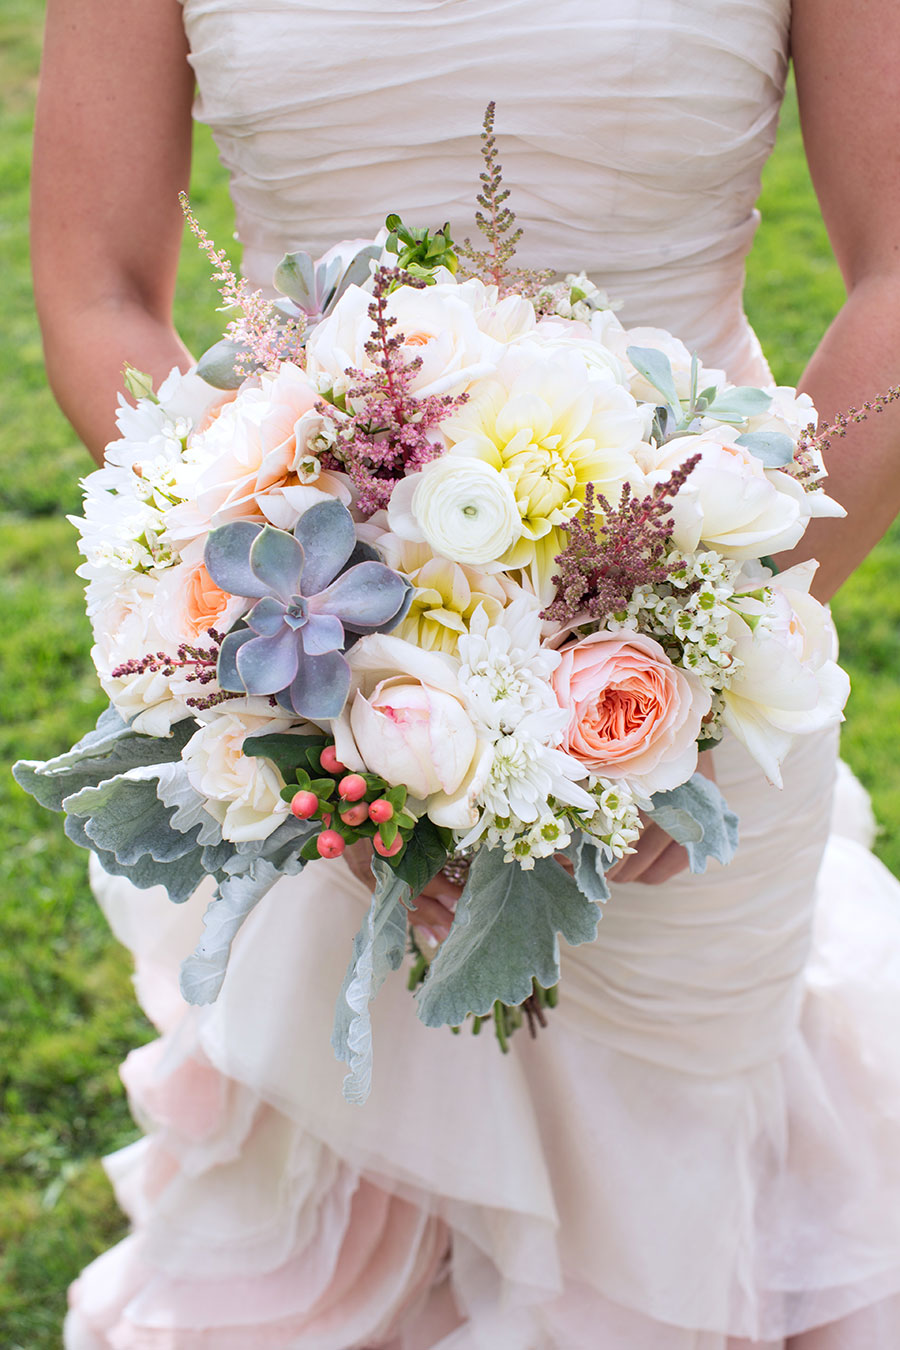 Succulent Wedding Bouquet in pastel hues